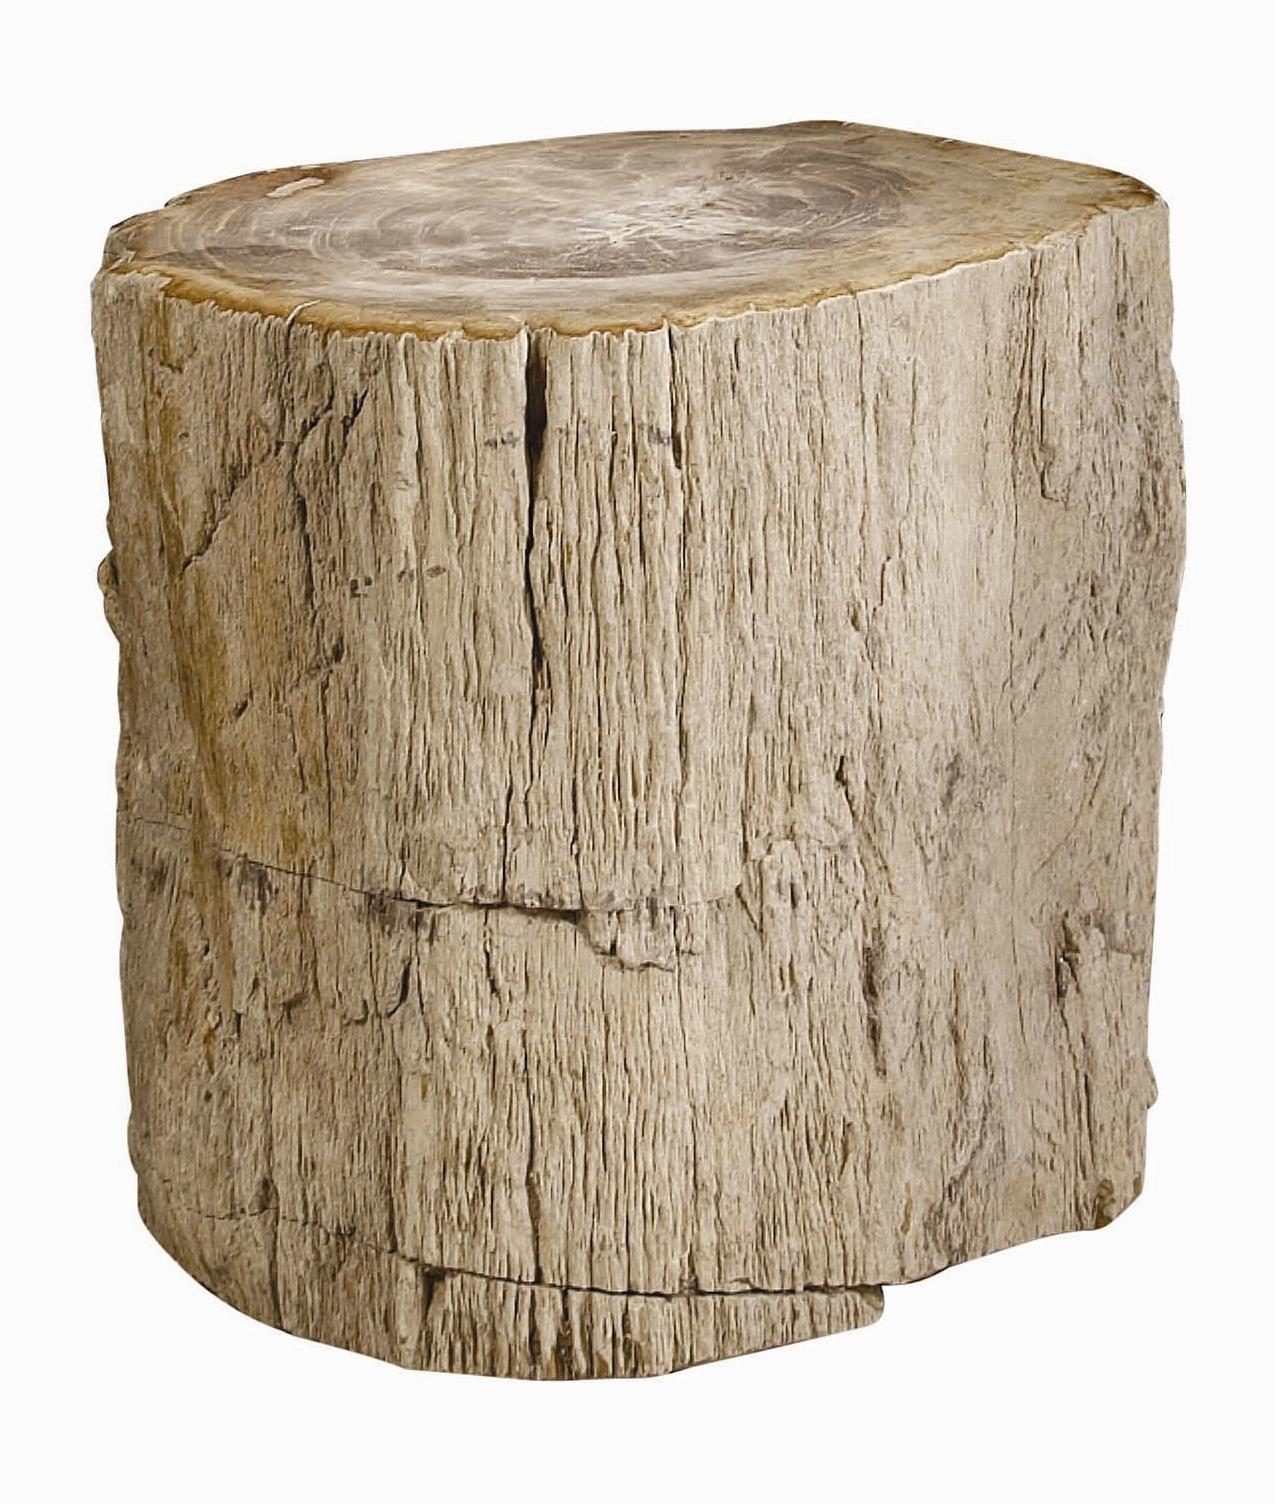 Bernhardt Interiors - Accents Petrified Wood Side Table - Item Number: 319-712